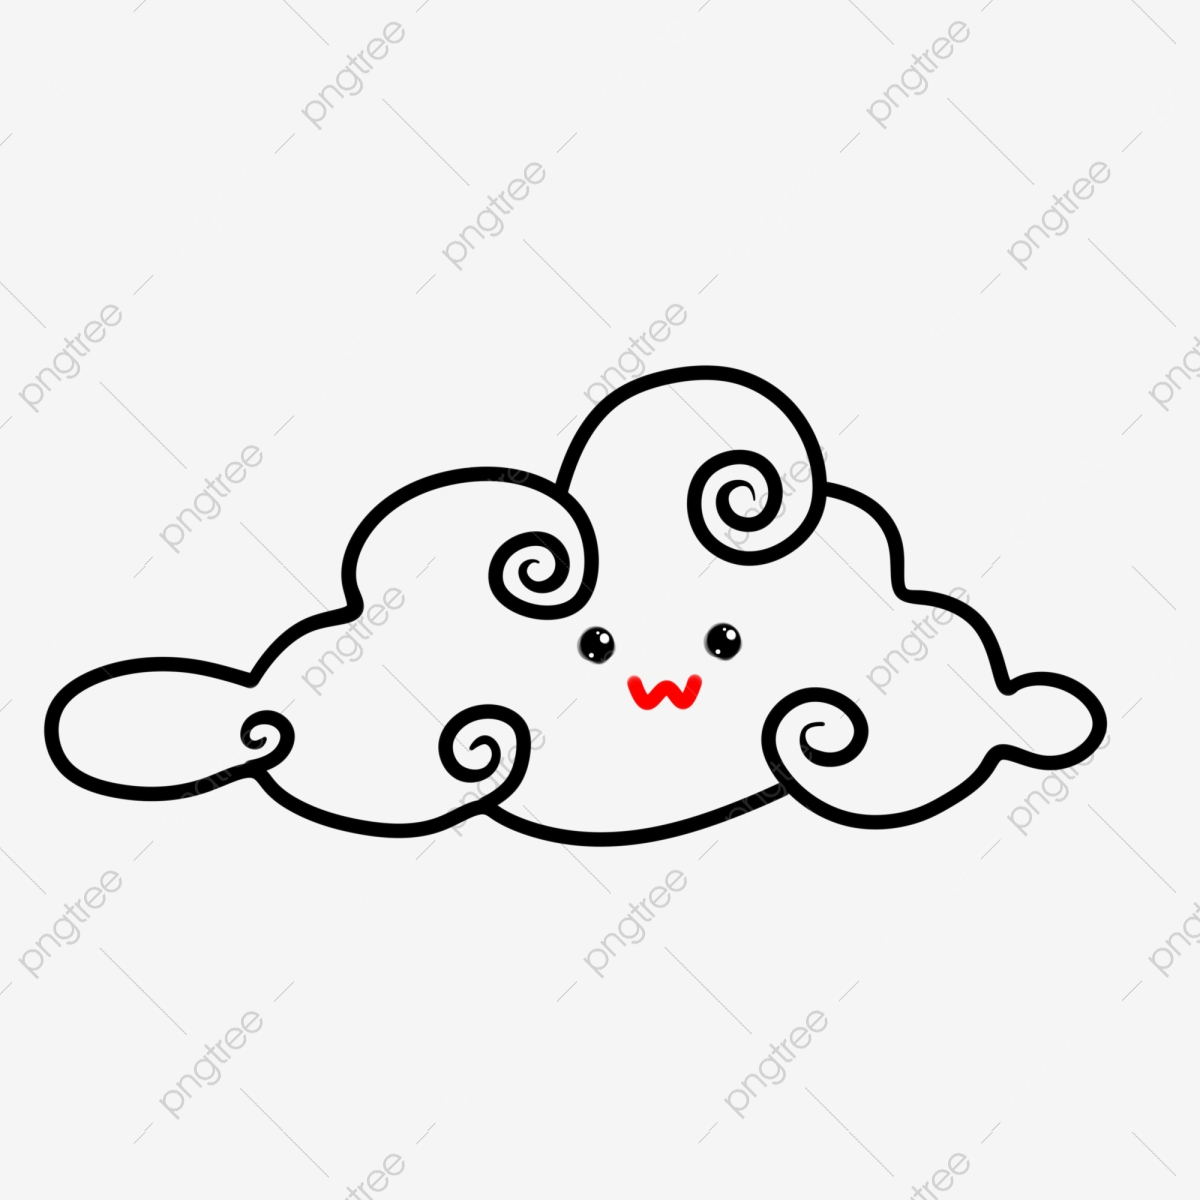 Waves and Clouds Clip Art